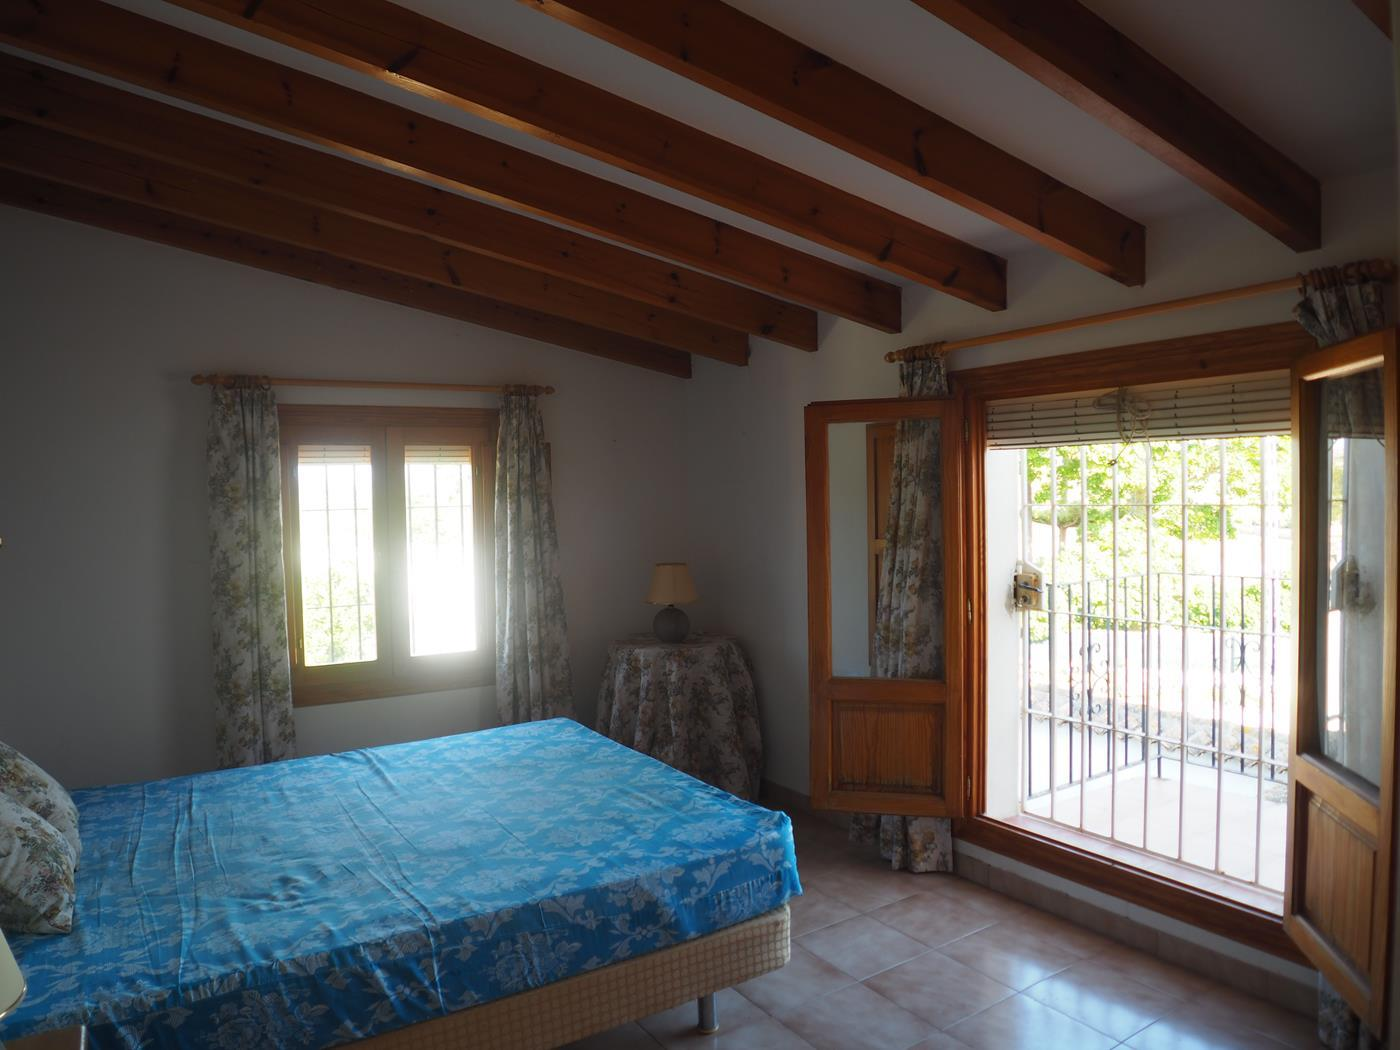 Photogallery - 22 - Exceptional homes in the Costa Blanca. Unparalleled Service. Exceptional properties in the Costa Blanca